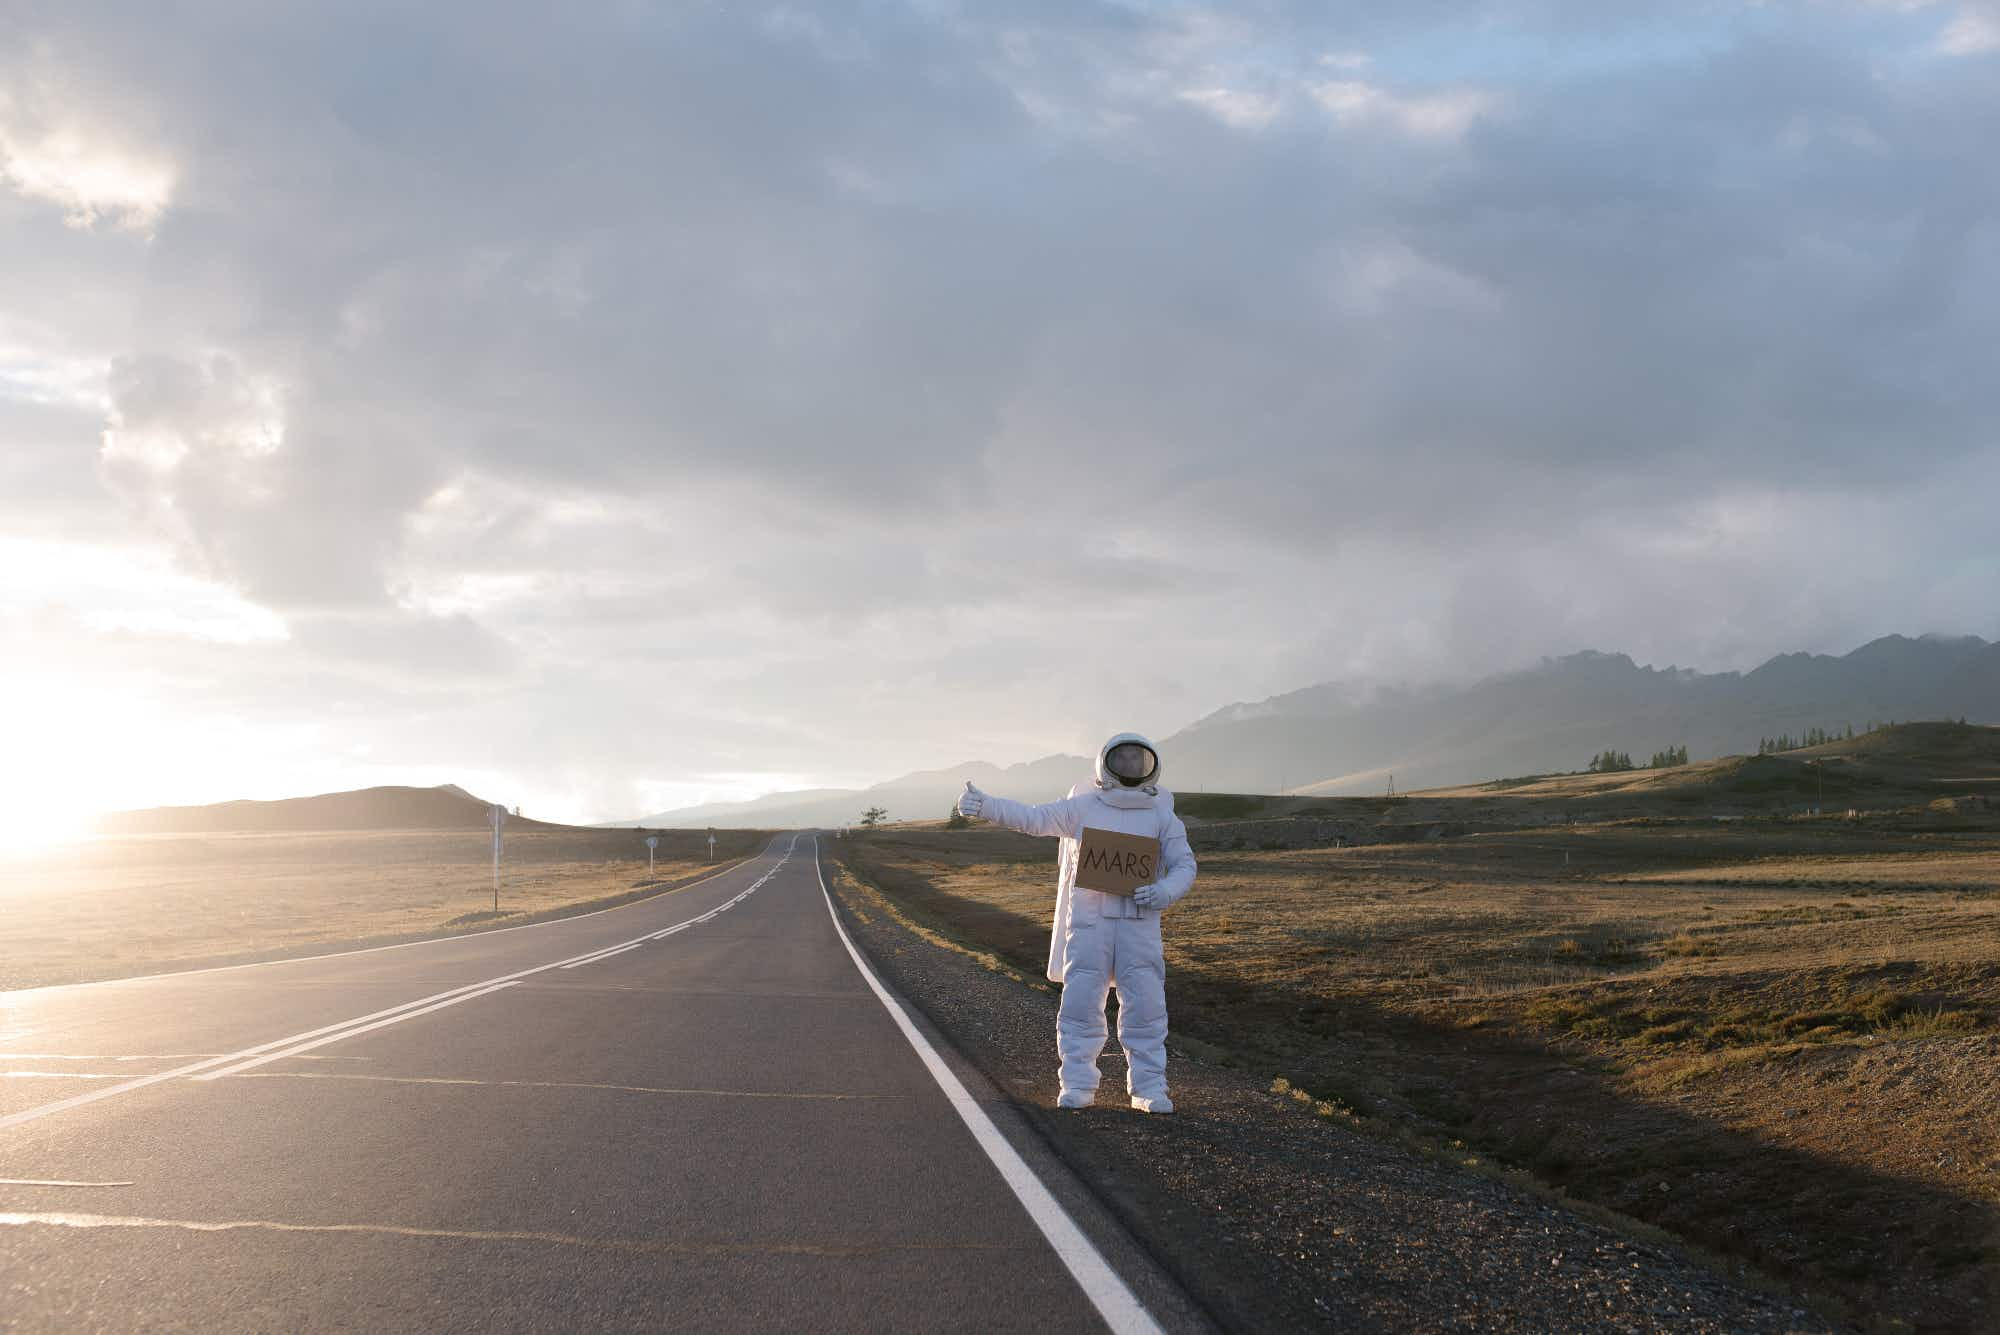 Photographer brings the adventures of a 'lost astronaut' down to Earth